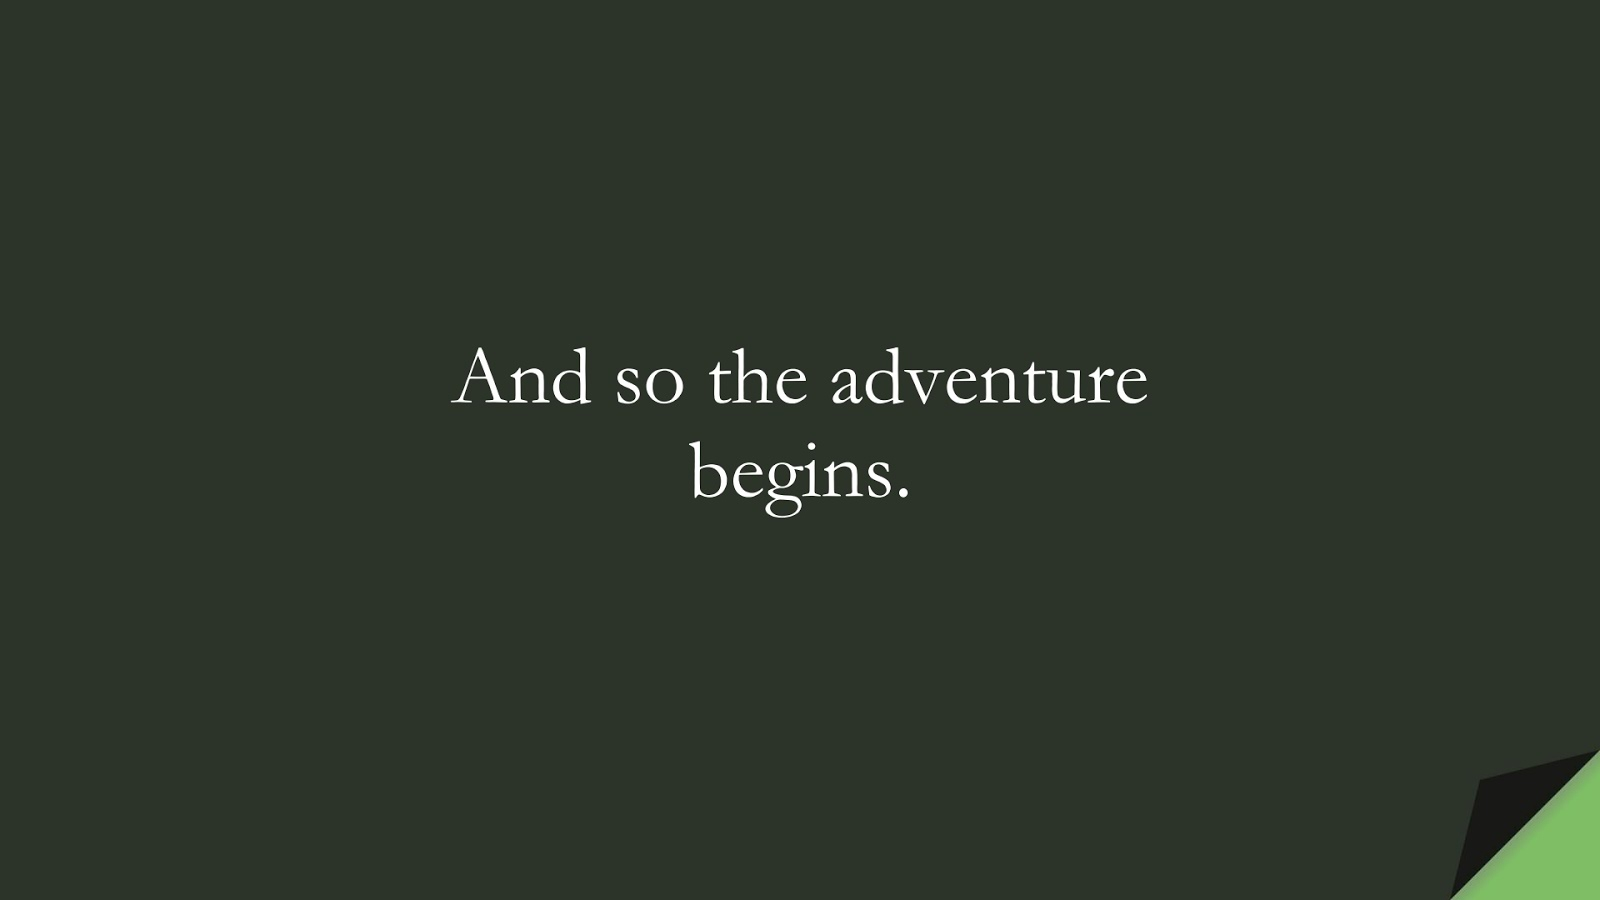 And so the adventure begins.FALSE